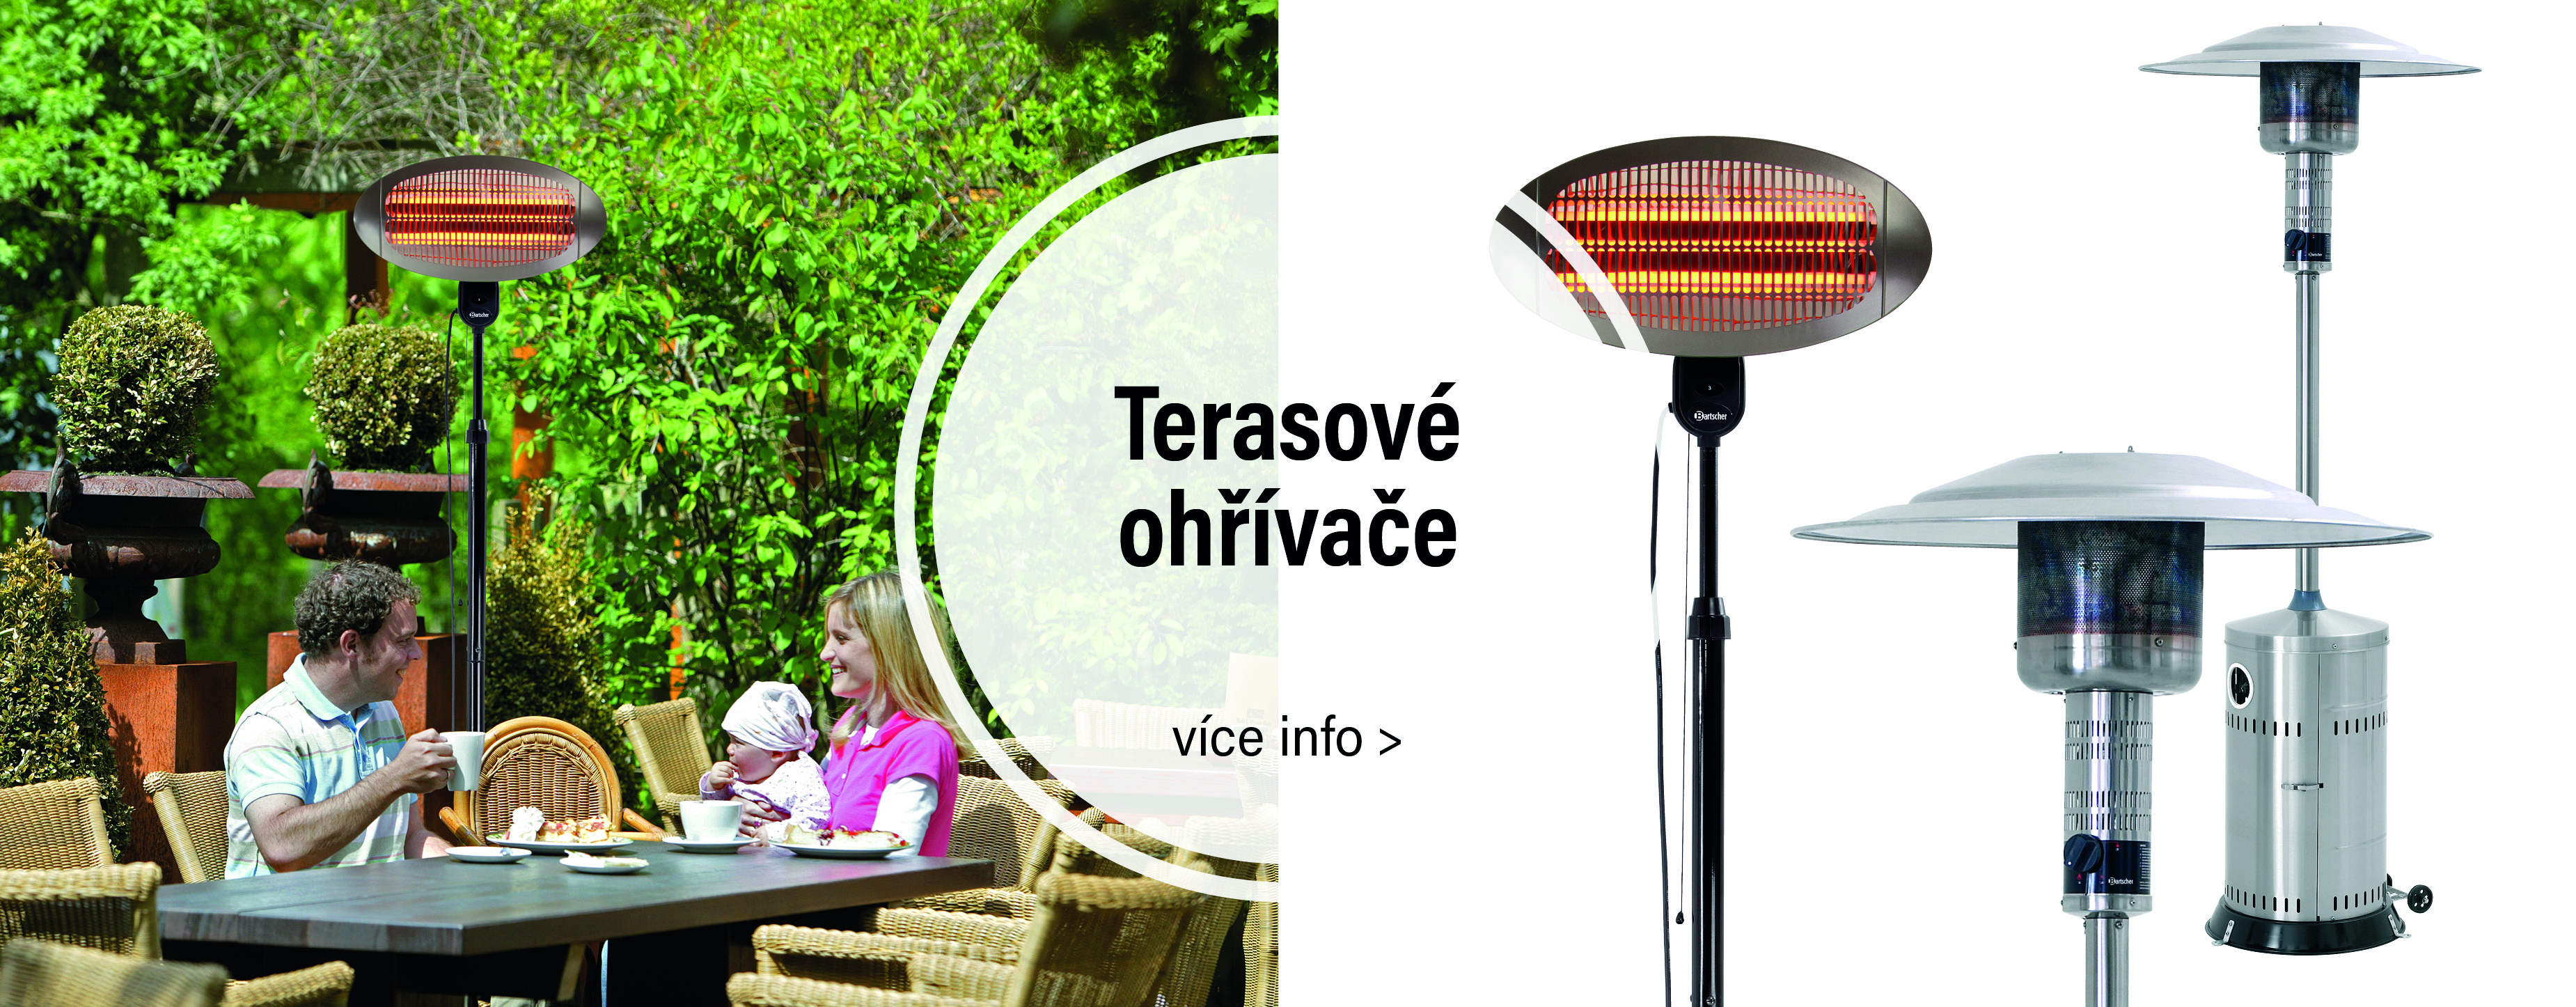 terasove-ohrivace